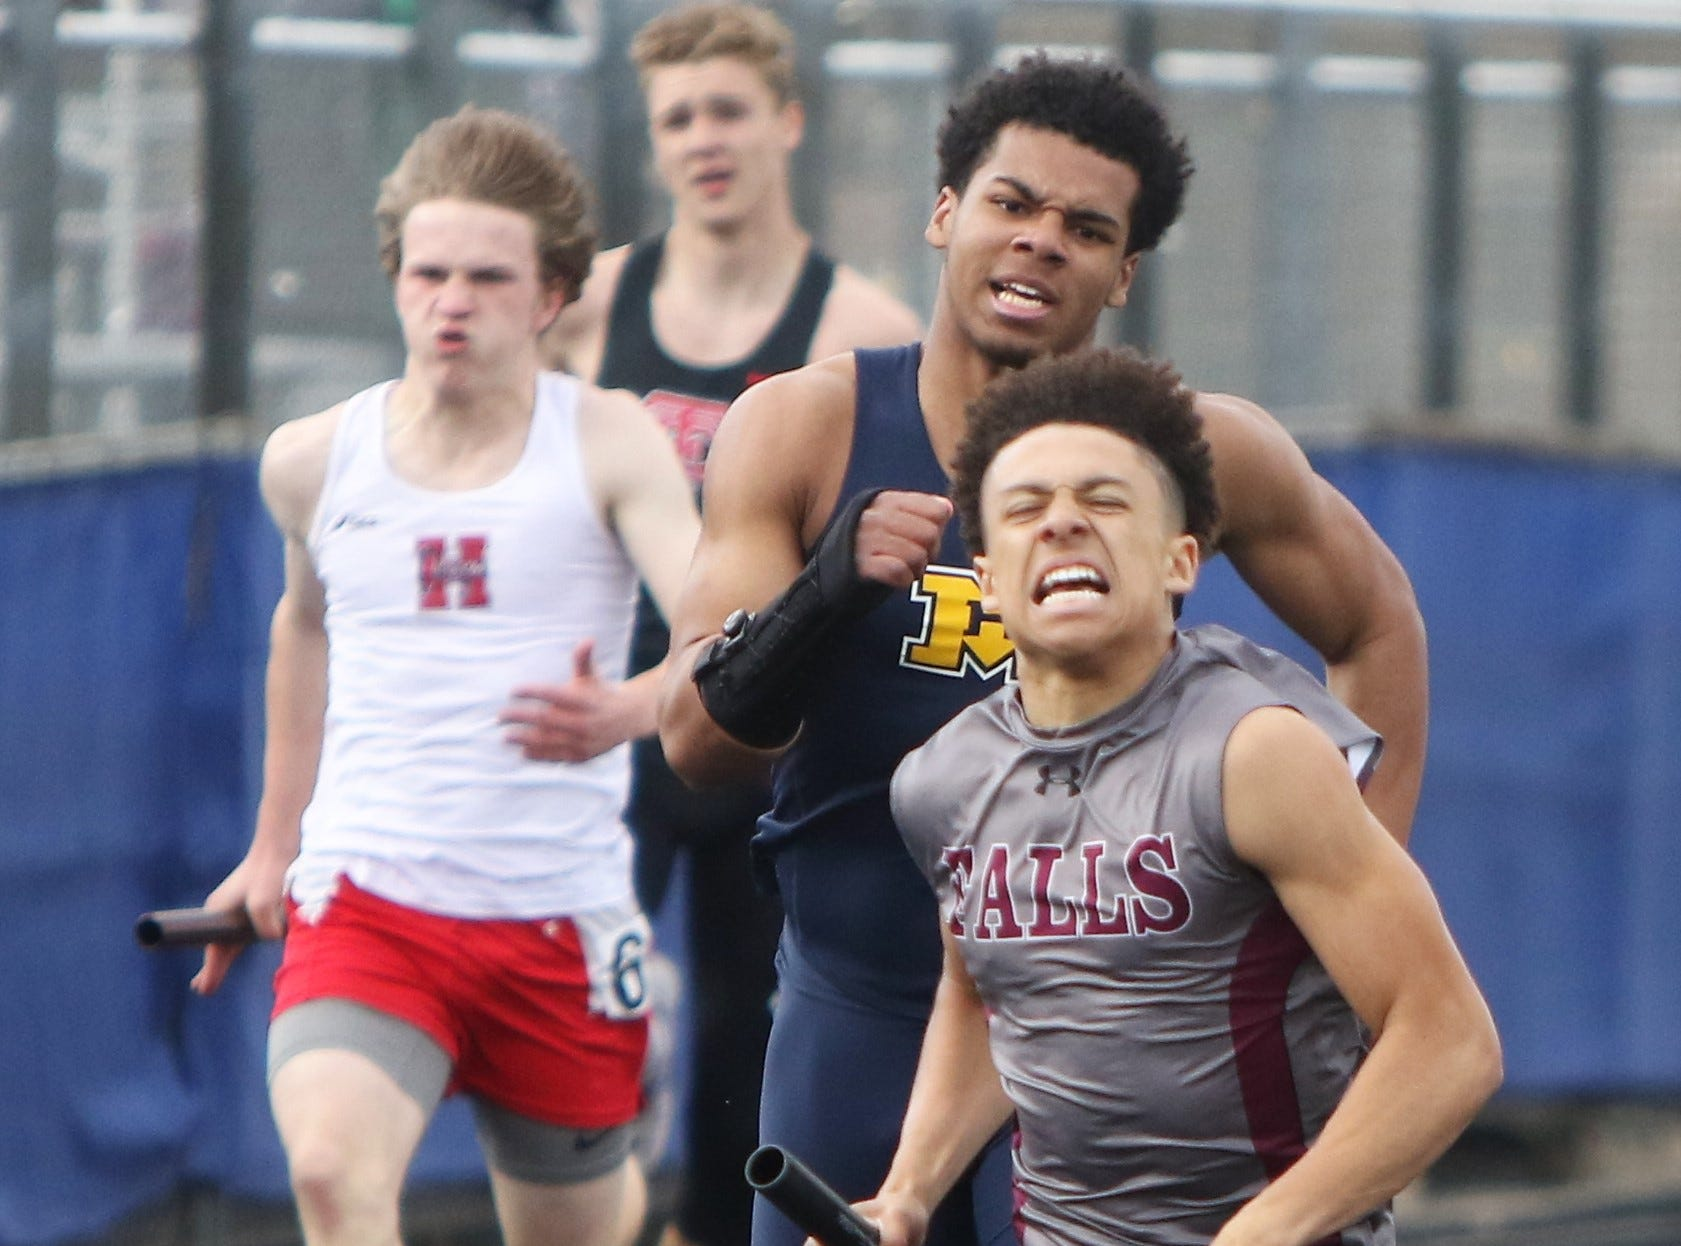 Quintin Redding of Menomonee Falls (right) holds off the pack, including Riley Nowakowski of Marquette, to win the 4x100 relay at the Greater Metro Conference outdoor championships on May 14, 2019.